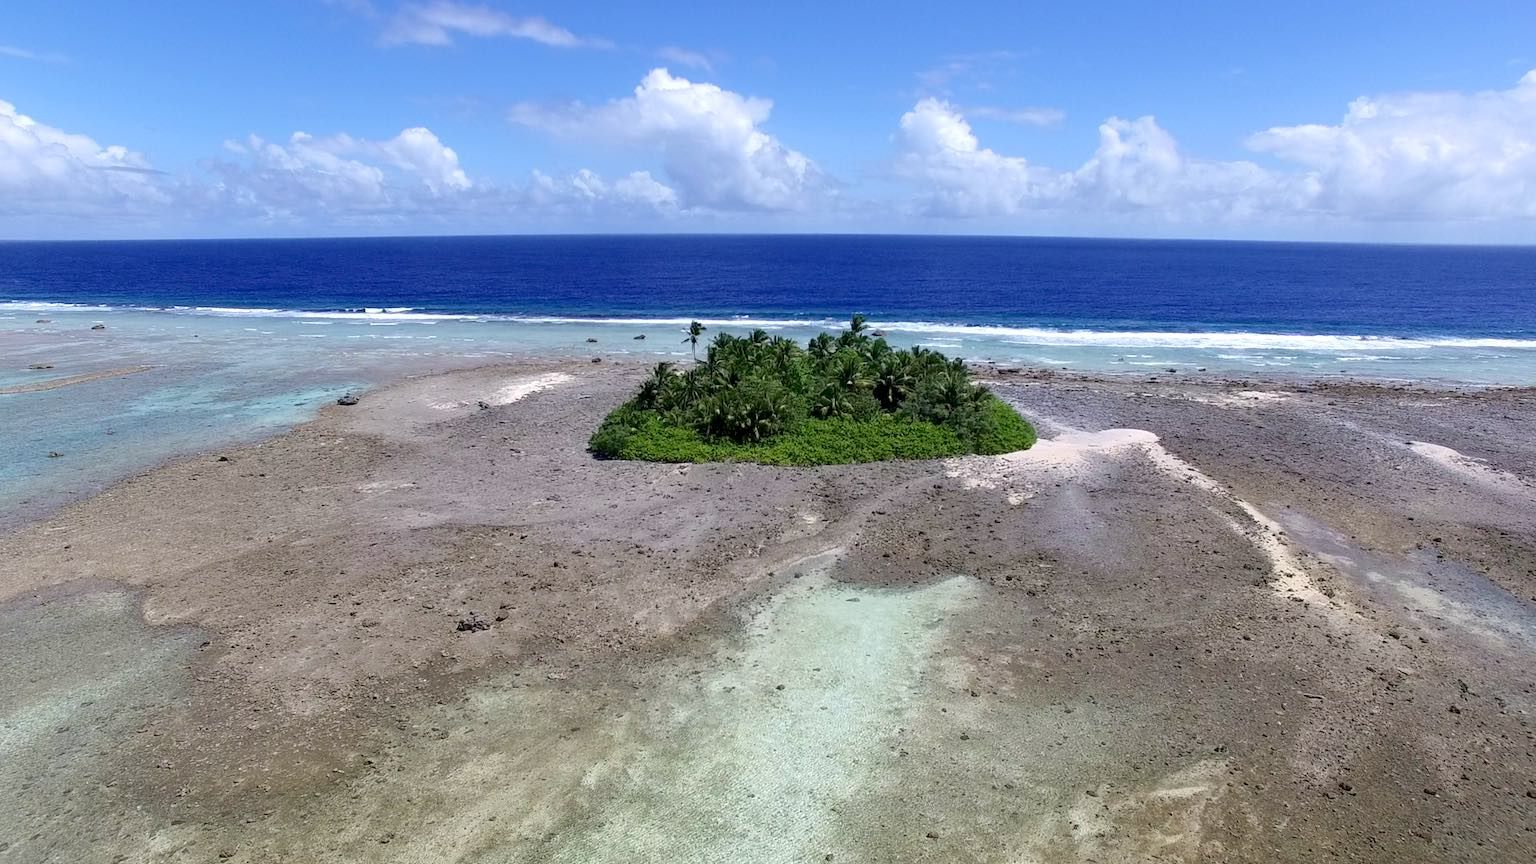 Aerial photo of Mili Atoll (172E, 6N), Republic of the Marshall Islands taken by a drone during our recent fieldwork in the western tropical Pacific. Photo by Jeffrey P. Donnelly.